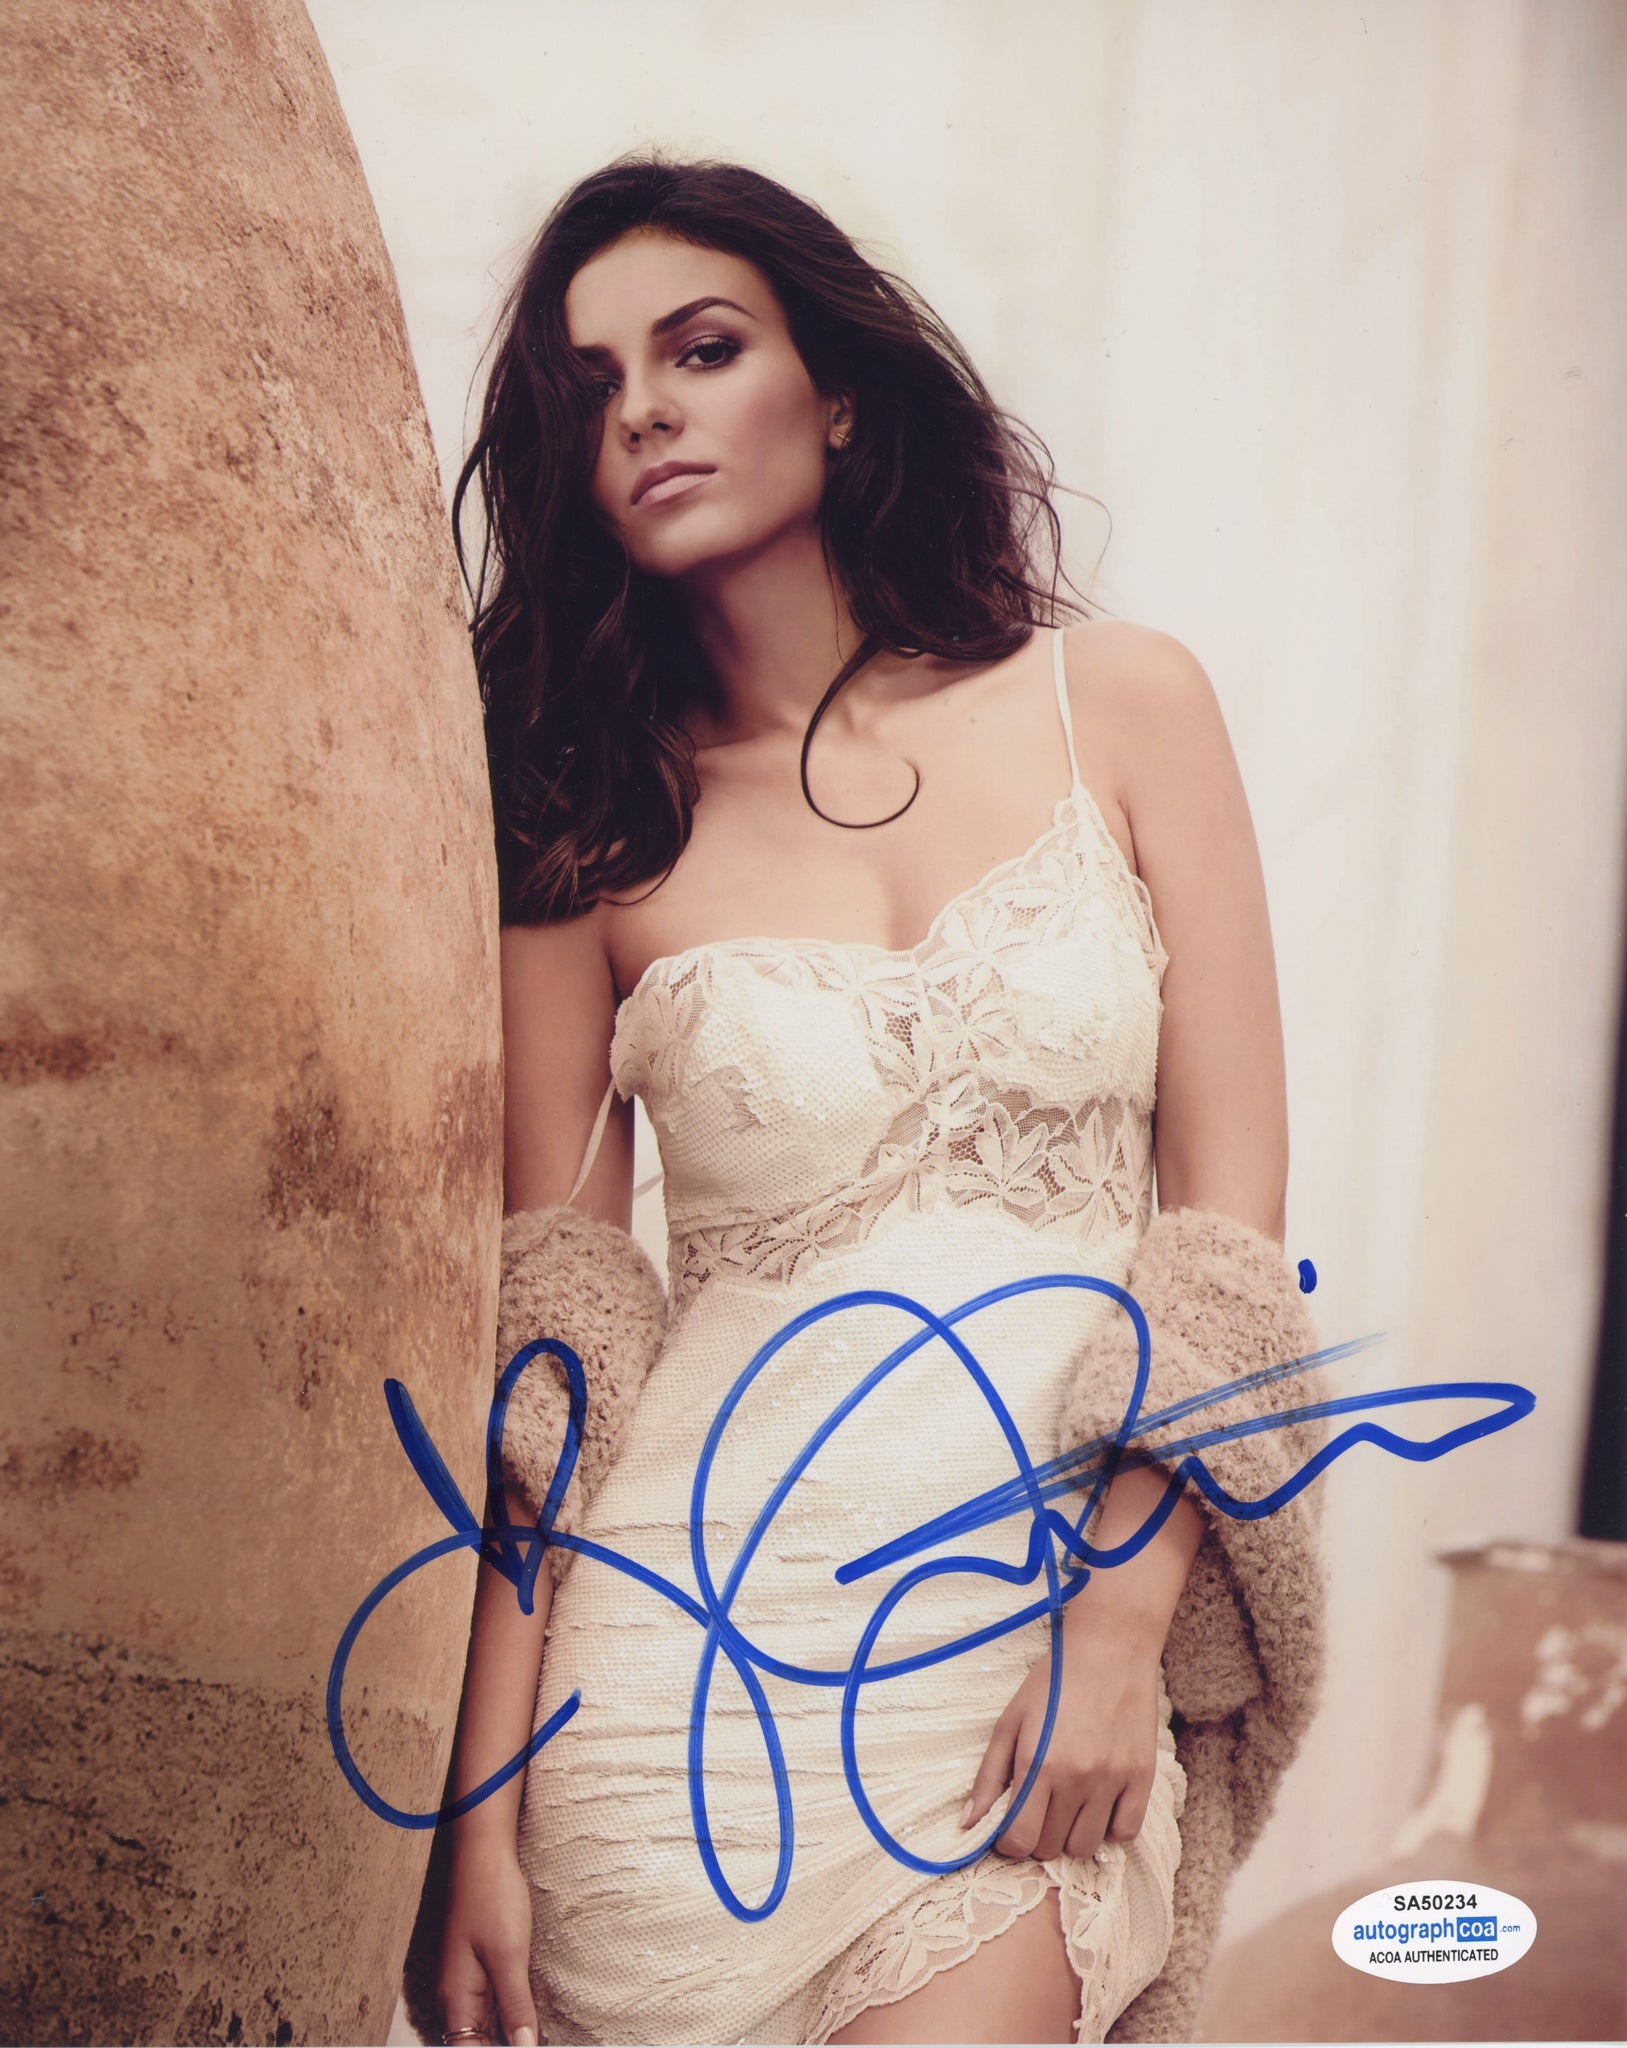 Victoria Justice Sexy Signed Autograph 8x10 Photo ACOA